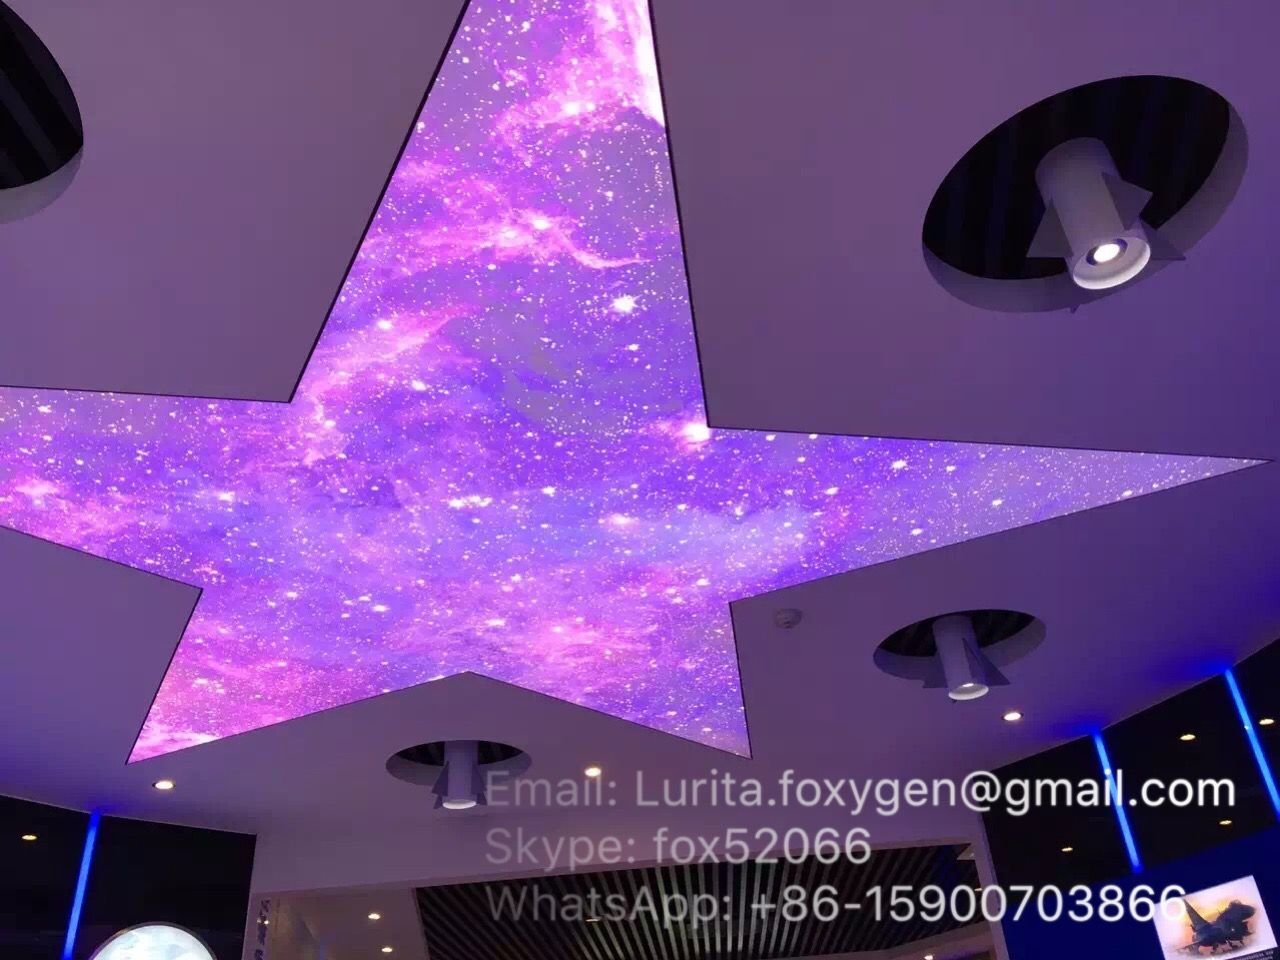 soft uv print pvc stretch ceiling film system has been widely popularized in China.